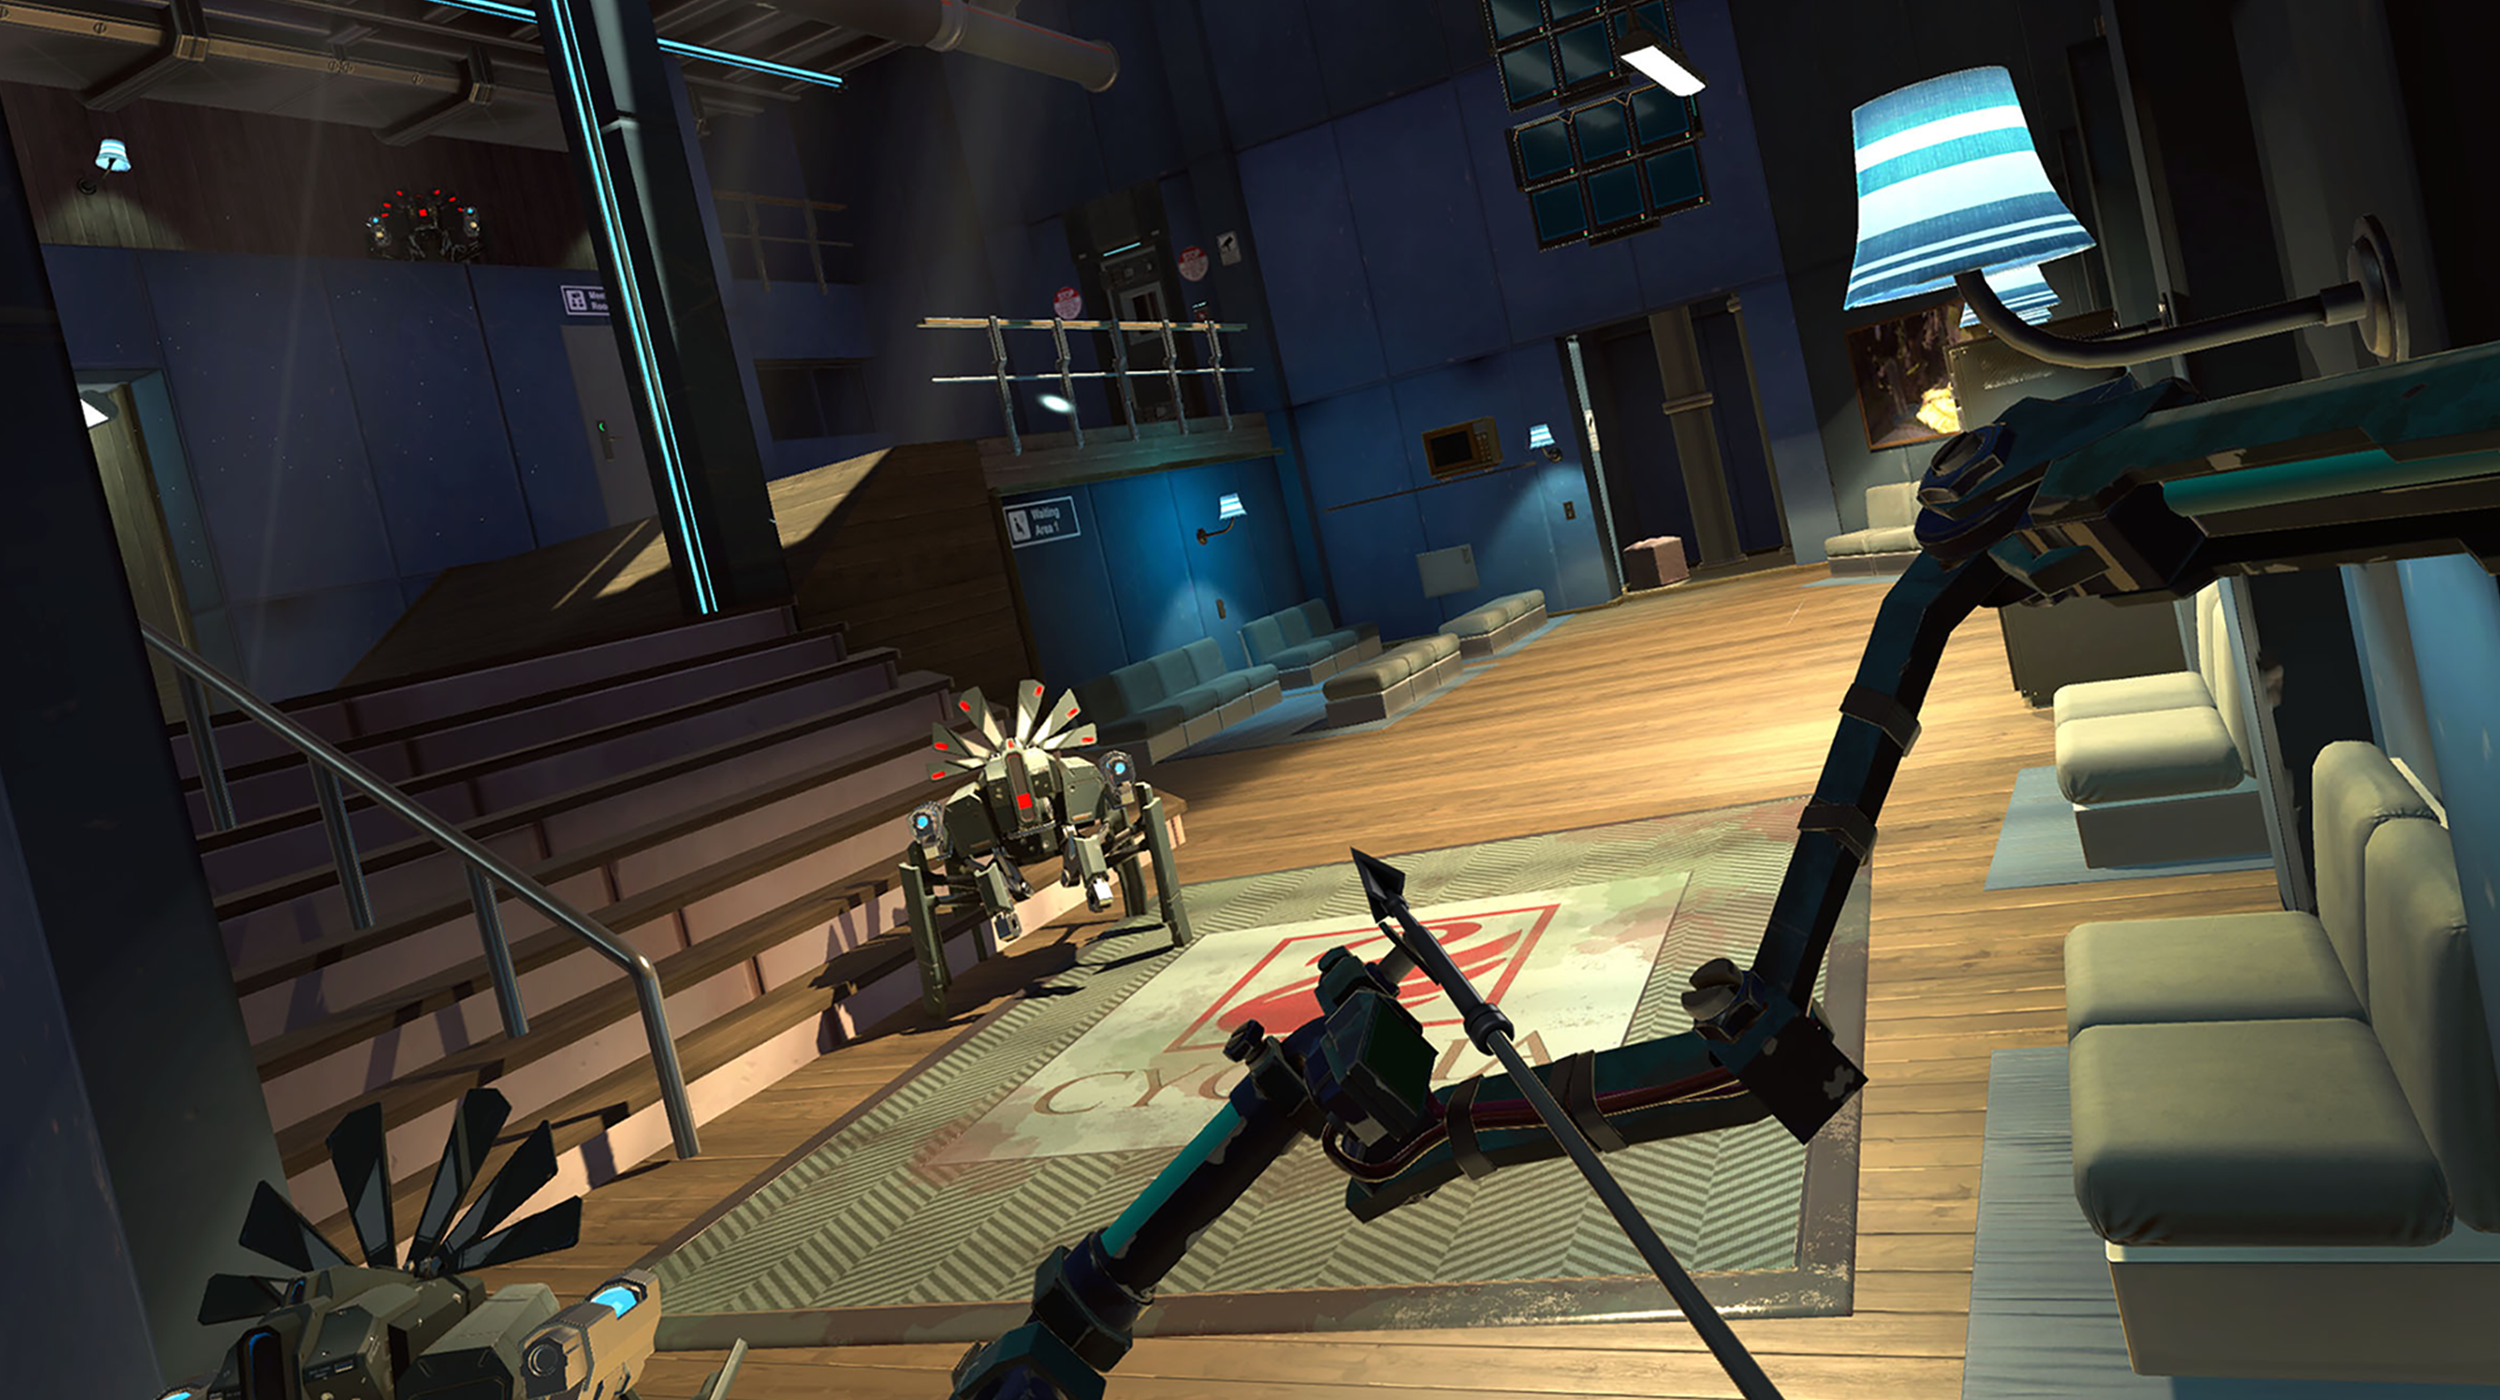 The amazing new release 'Apex Construct'. Shooting a bow and arrow in the virtual world!